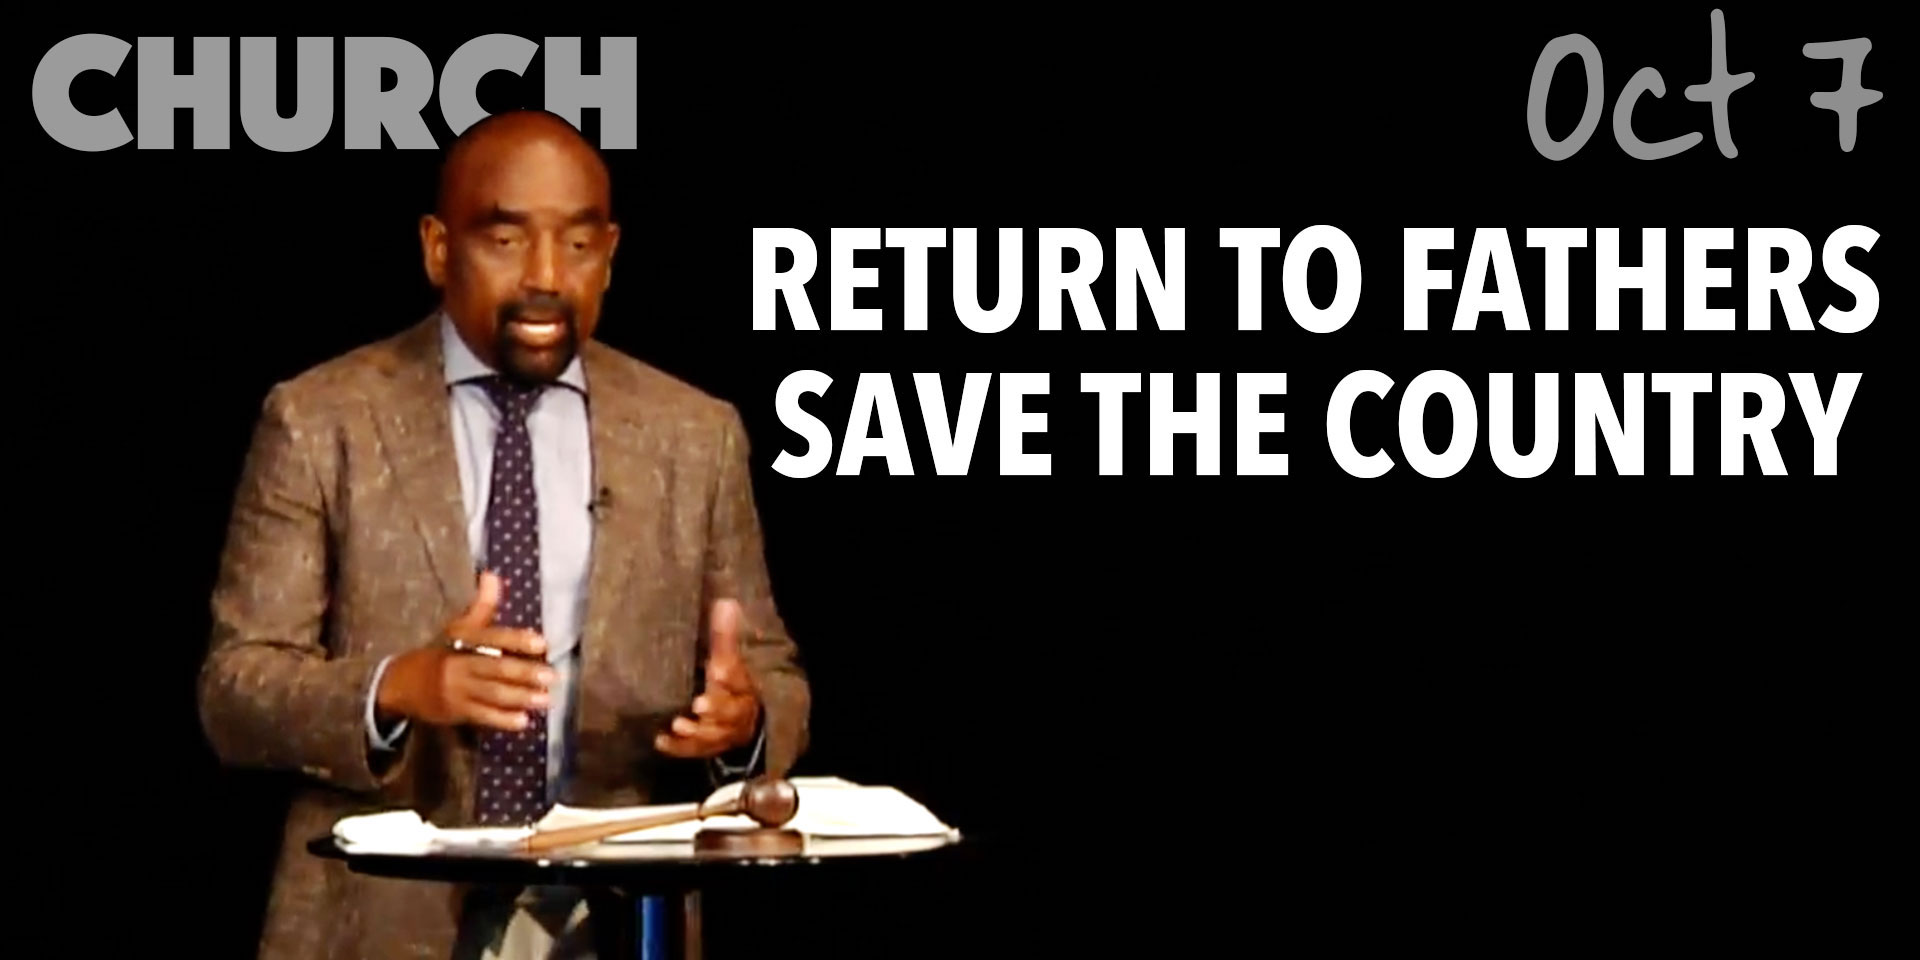 Return to Fathers to Save the Country (Church Oct 7)